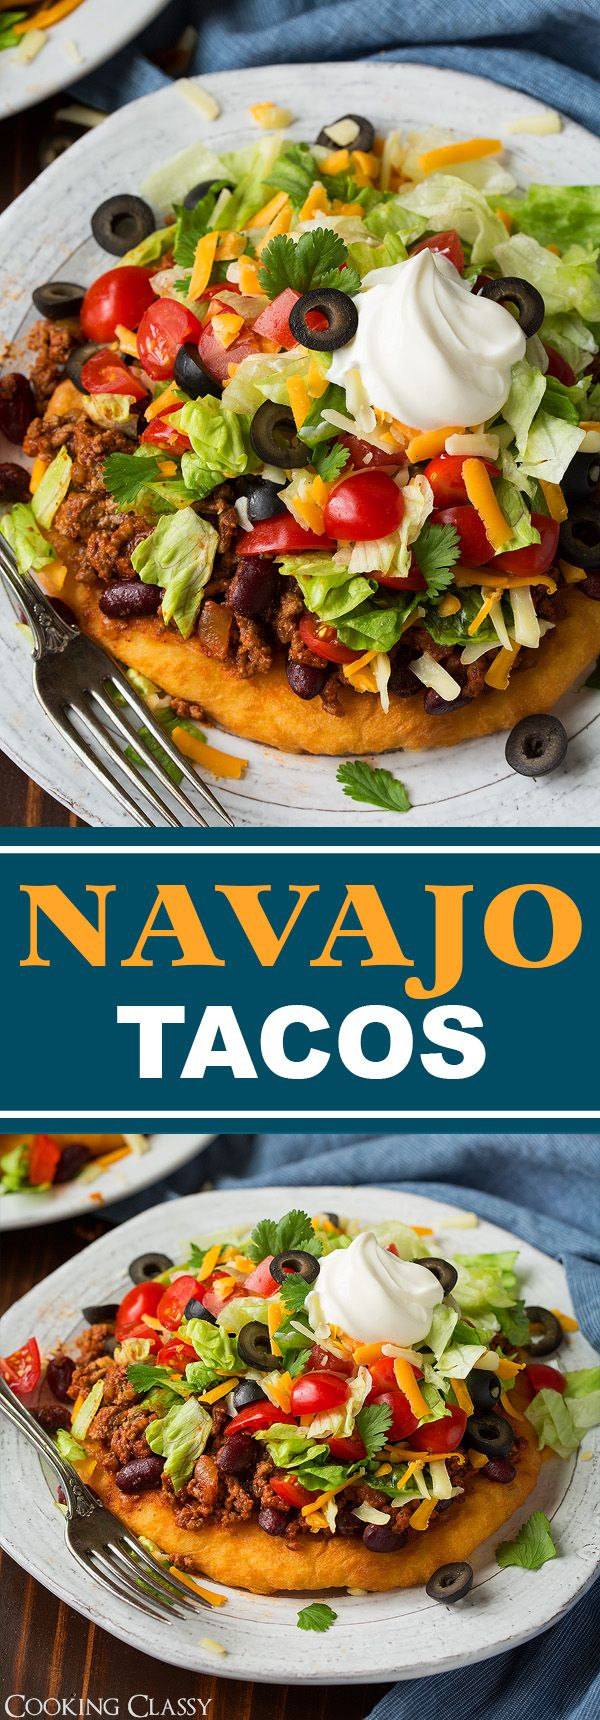 Homemade Indian fry bread loaded with a seasoned beef and bean taco filling and finished with all the classic taco toppings. A family favorite!